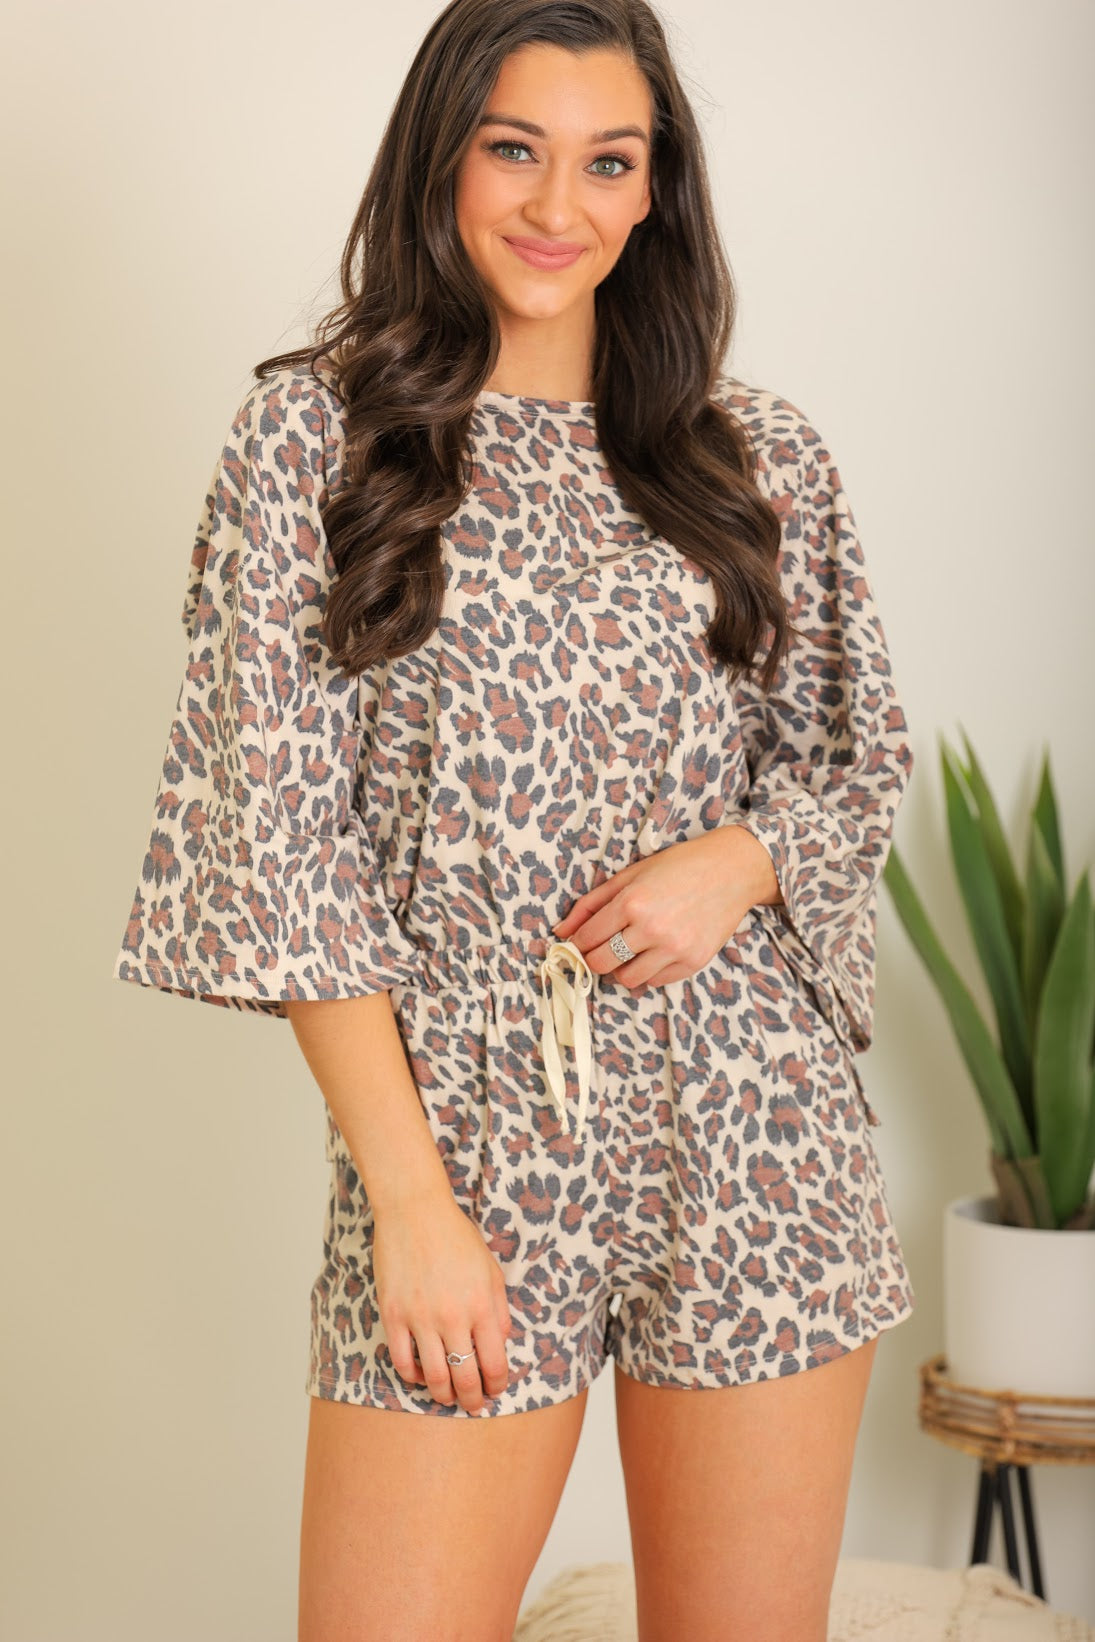 One Cool Cat Leopard Print Loungewear Set